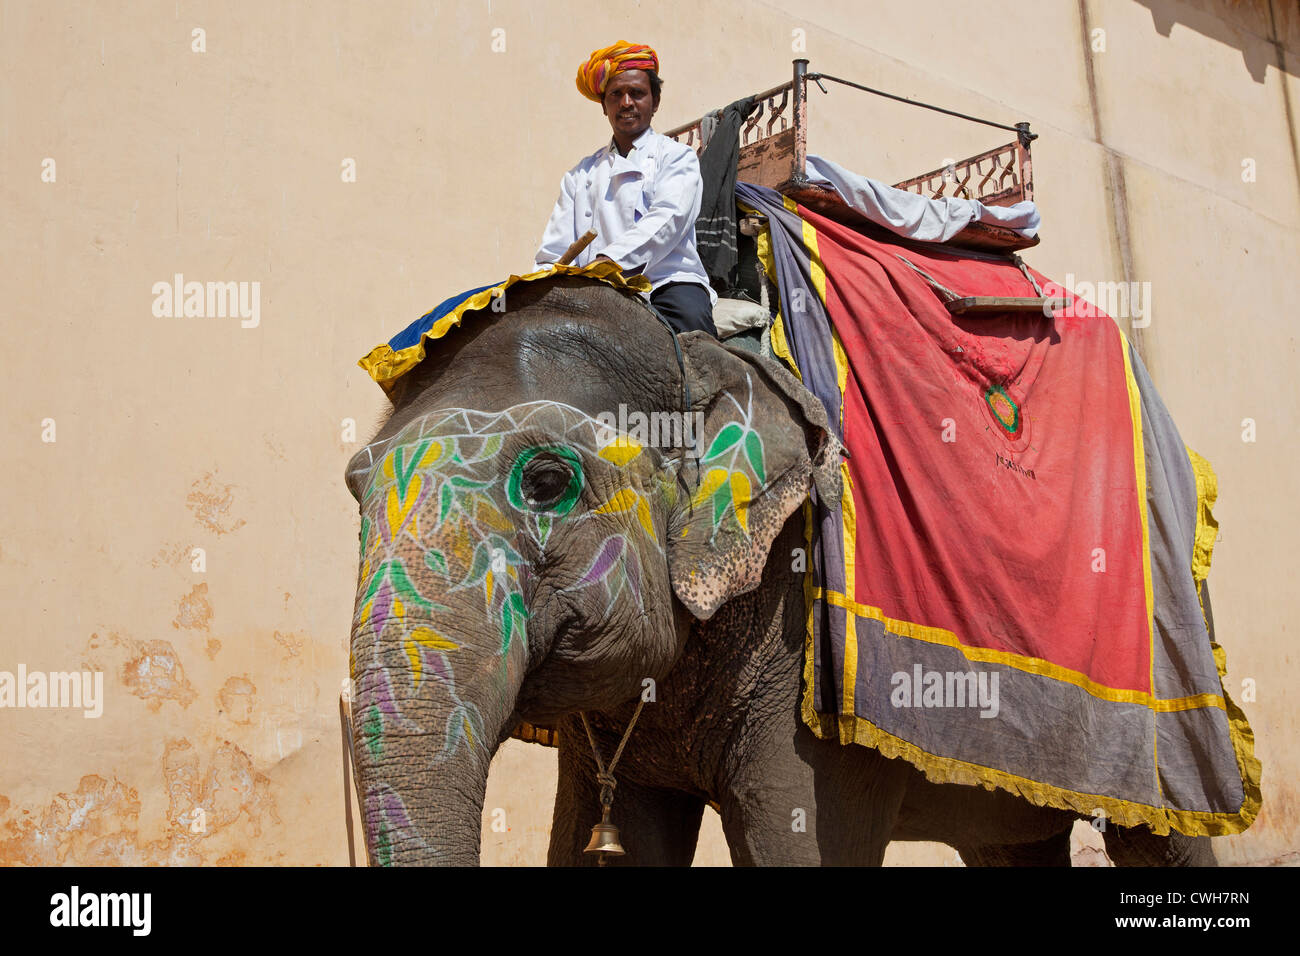 Mahout riding decorated Indian elephant for transporting tourists at Amer Fort / Amber Fort near Jaipur, Rajasthan, - Stock Image